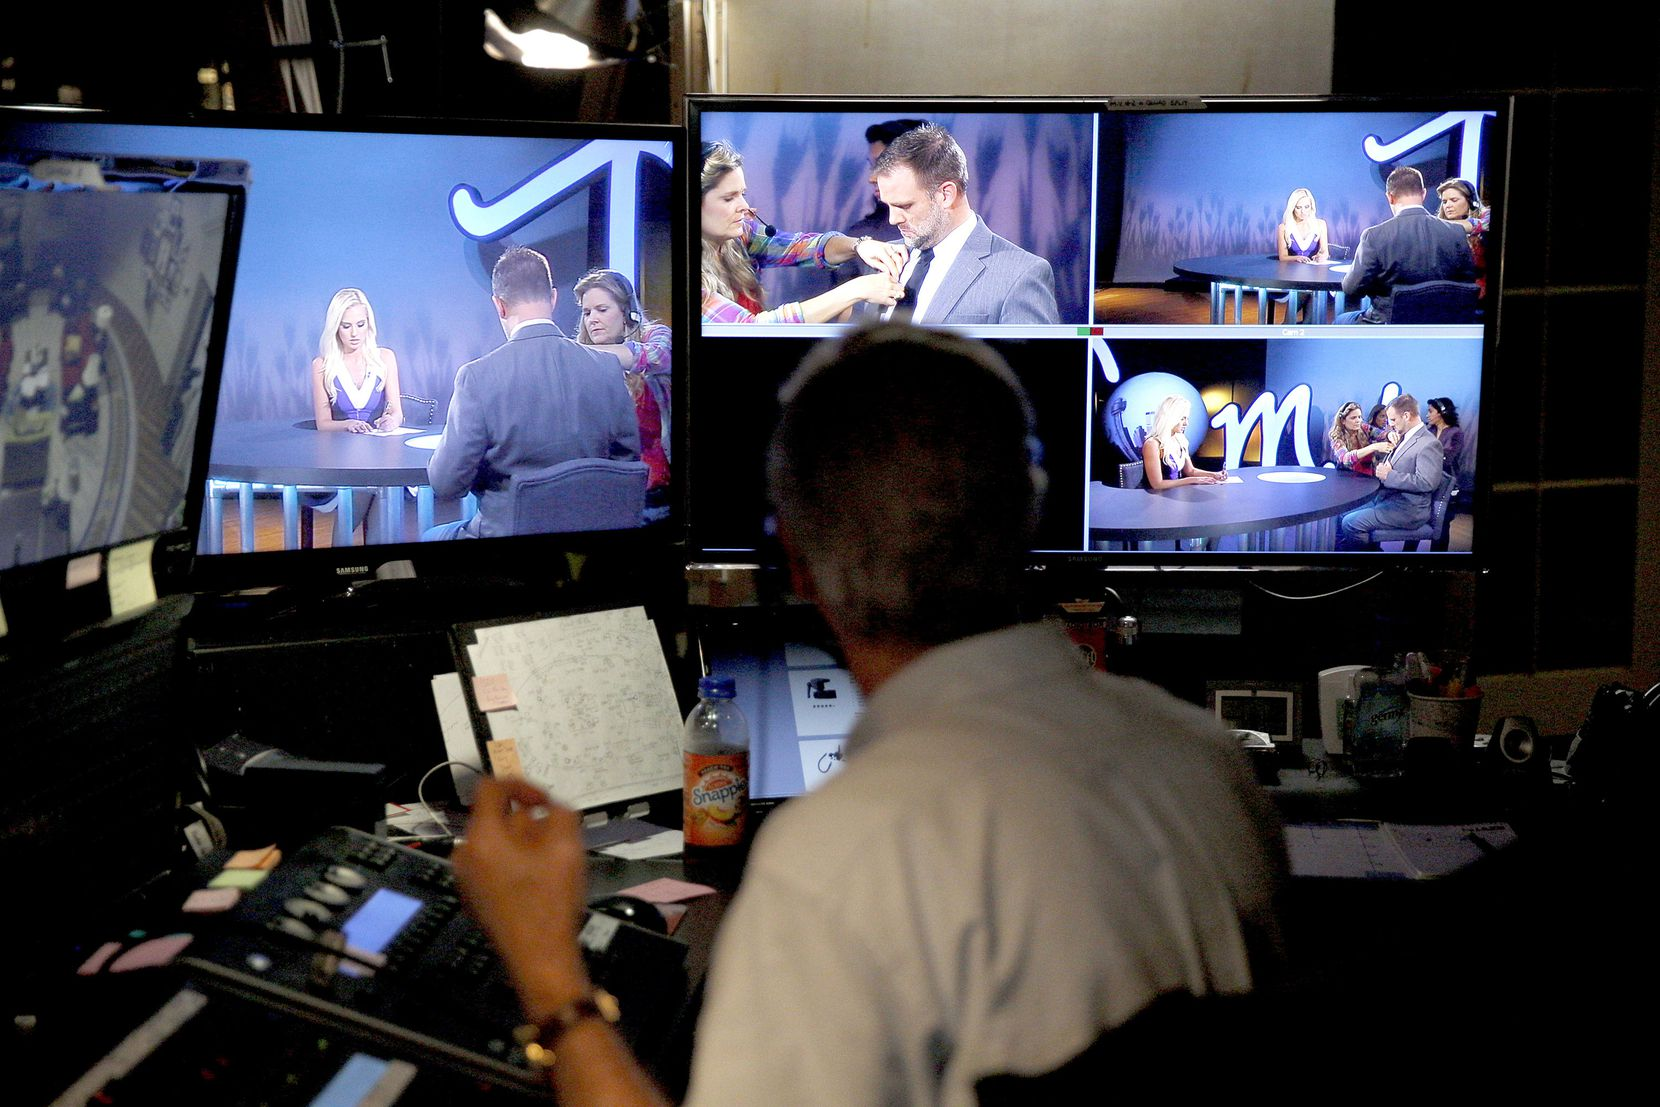 A taping of Tomi Lahren's show Tuesday, October 11, 2016 for Glenn Beck's The Blaze multimedia network, which is based in Irving, Texas.